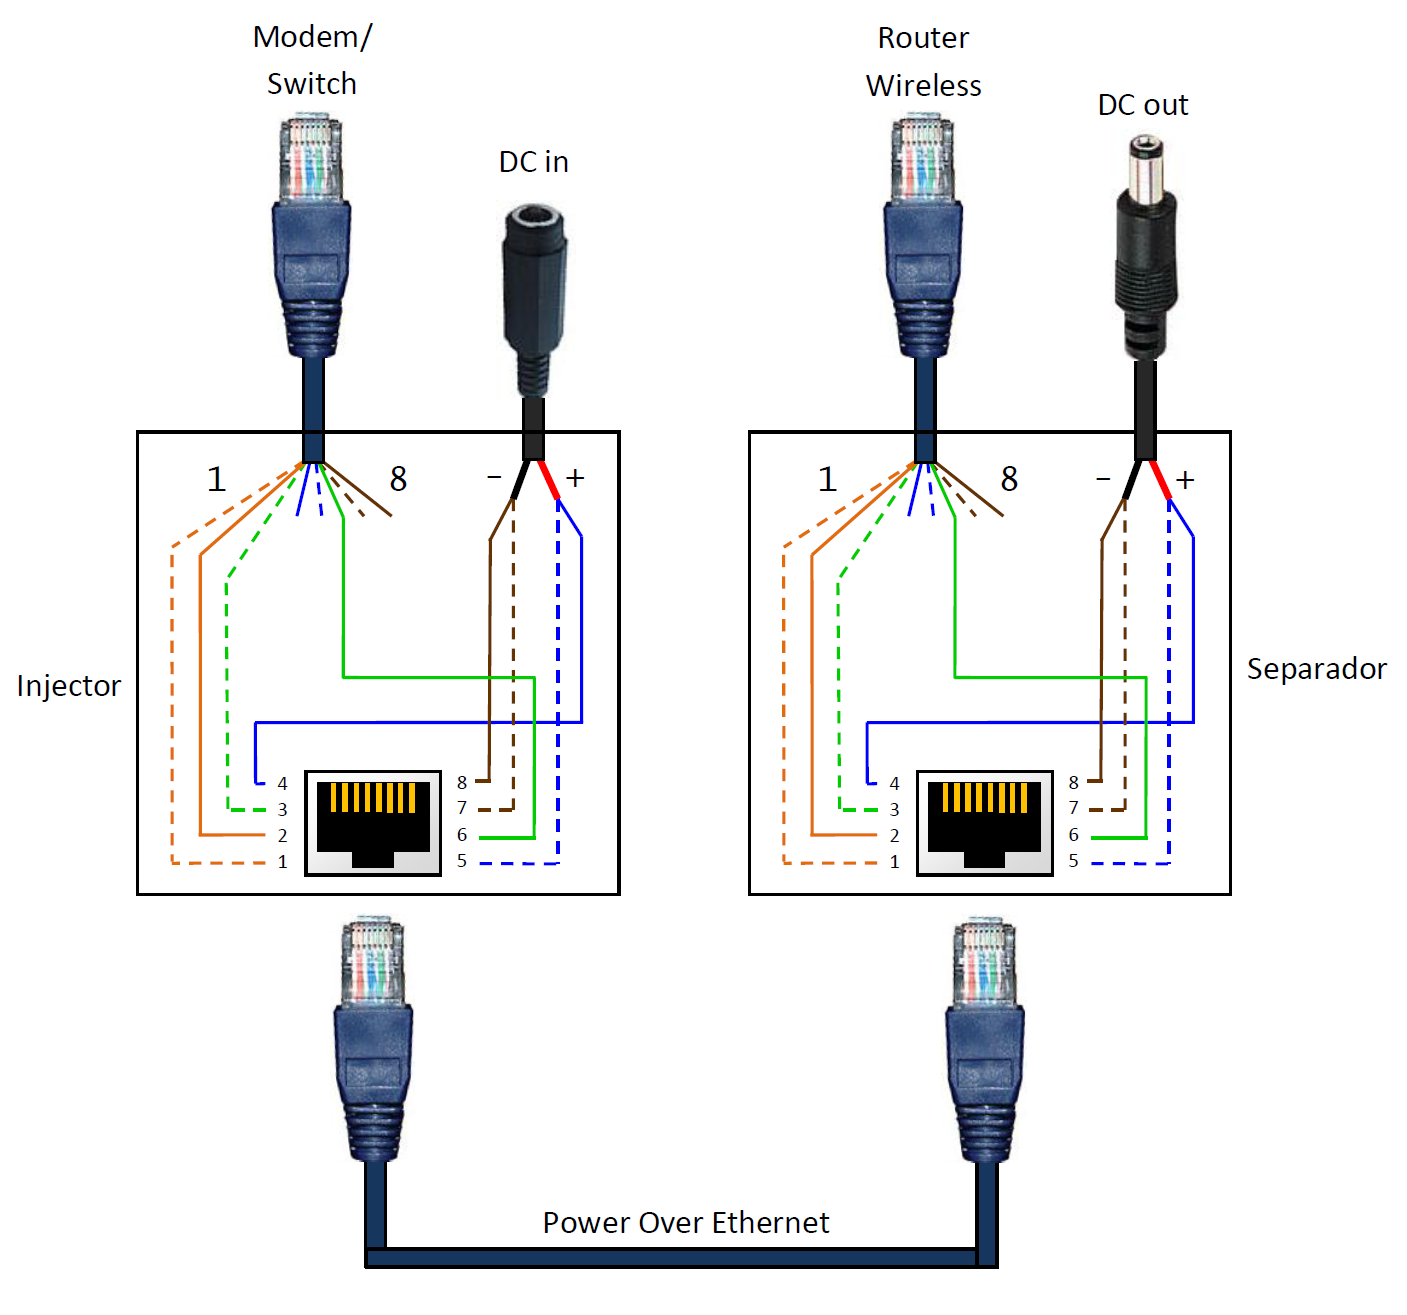 Rj11 Connector Diagram Simple Guide About Wiring Cat6 Power Over Ethernet Poe Adapter Elab Hackerspace Uk